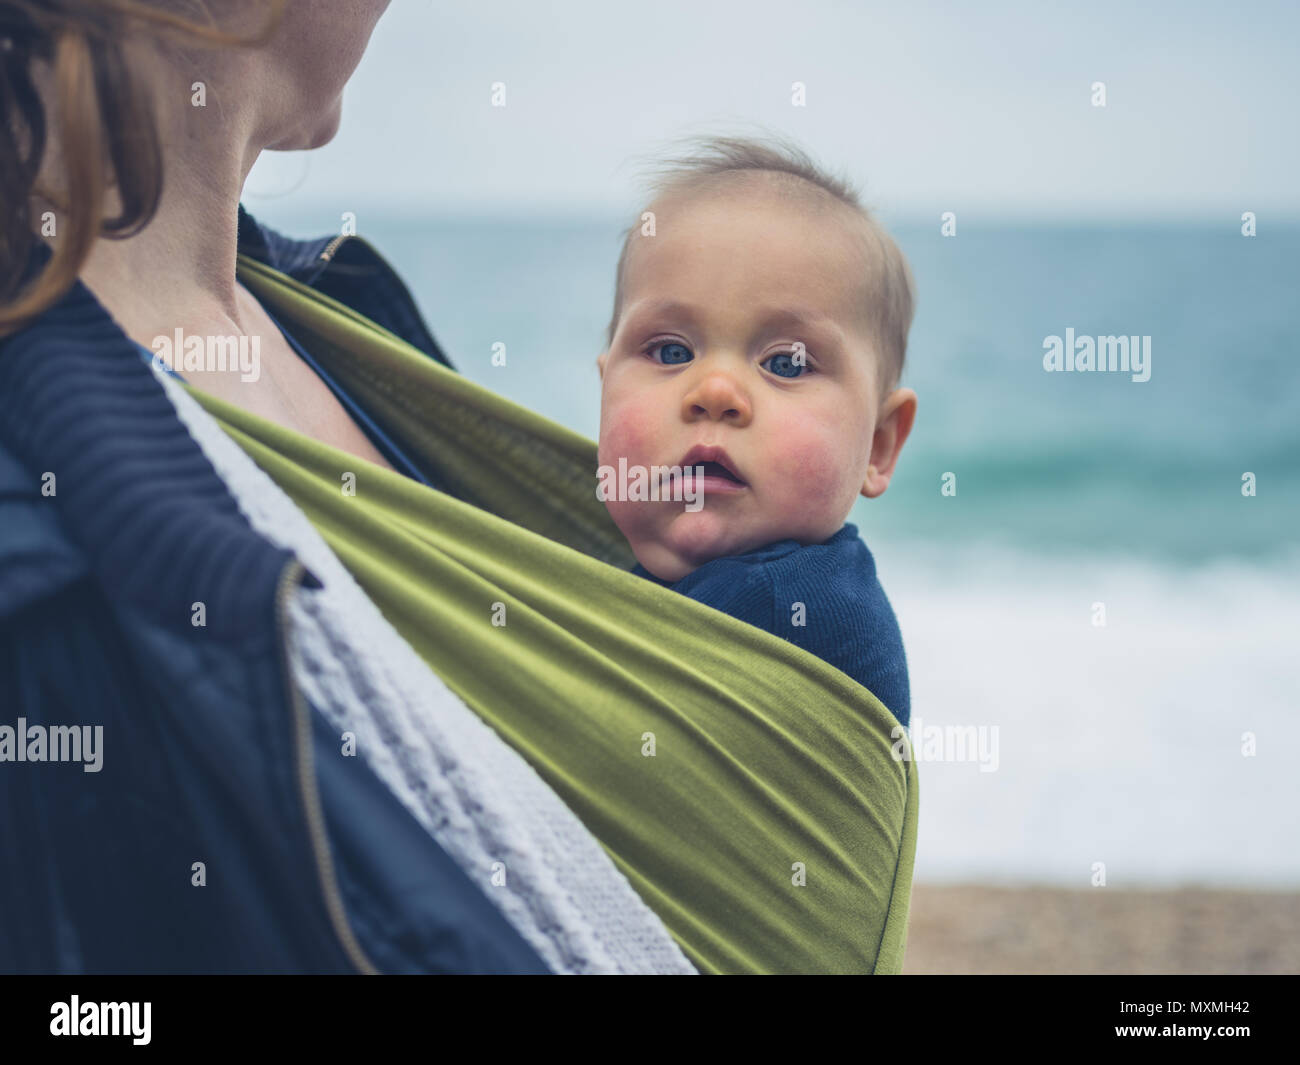 A mother is on the beach with her baby in a sling - Stock Image